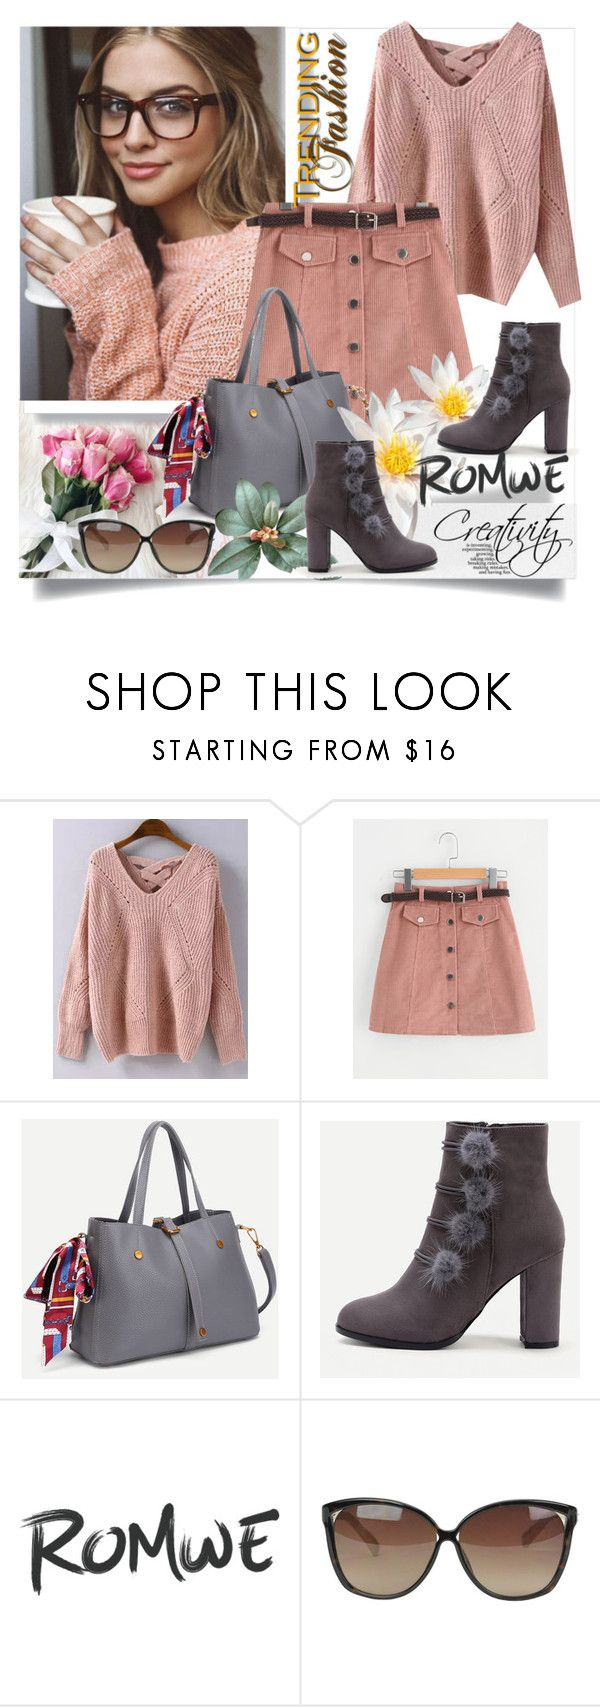 """""""ROMWE II/4"""" by creativity30 ❤ liked on Polyvore featuring Dukes, Linda Farrow and romwe"""